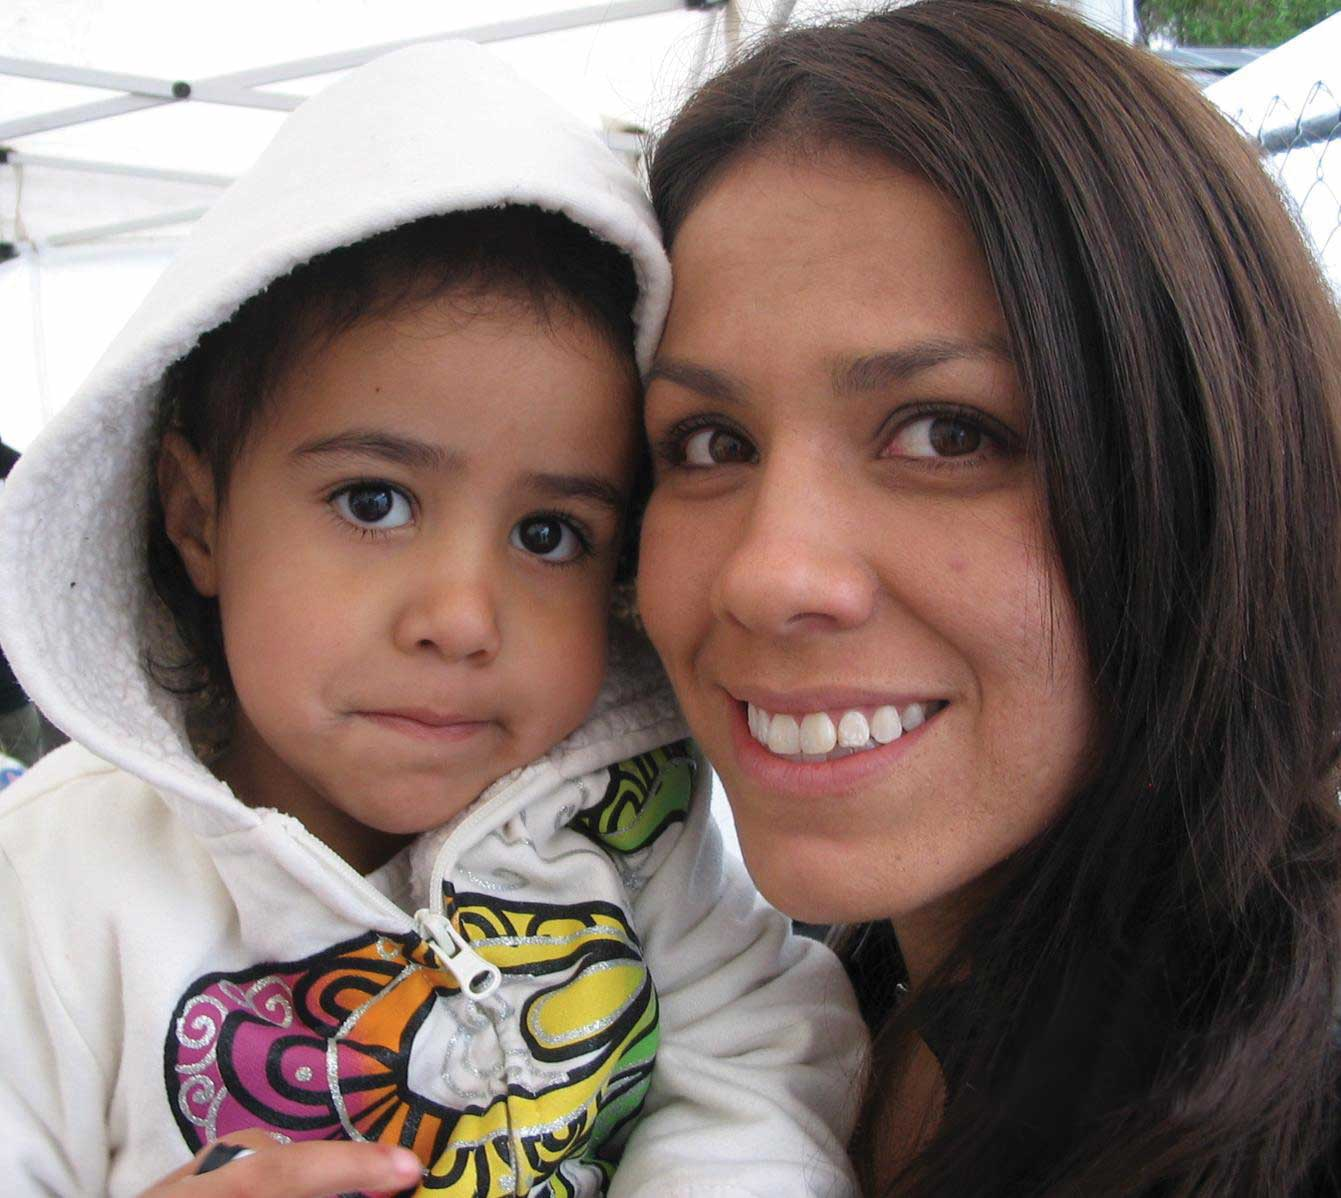 A young woman holds her small child, they are smiling